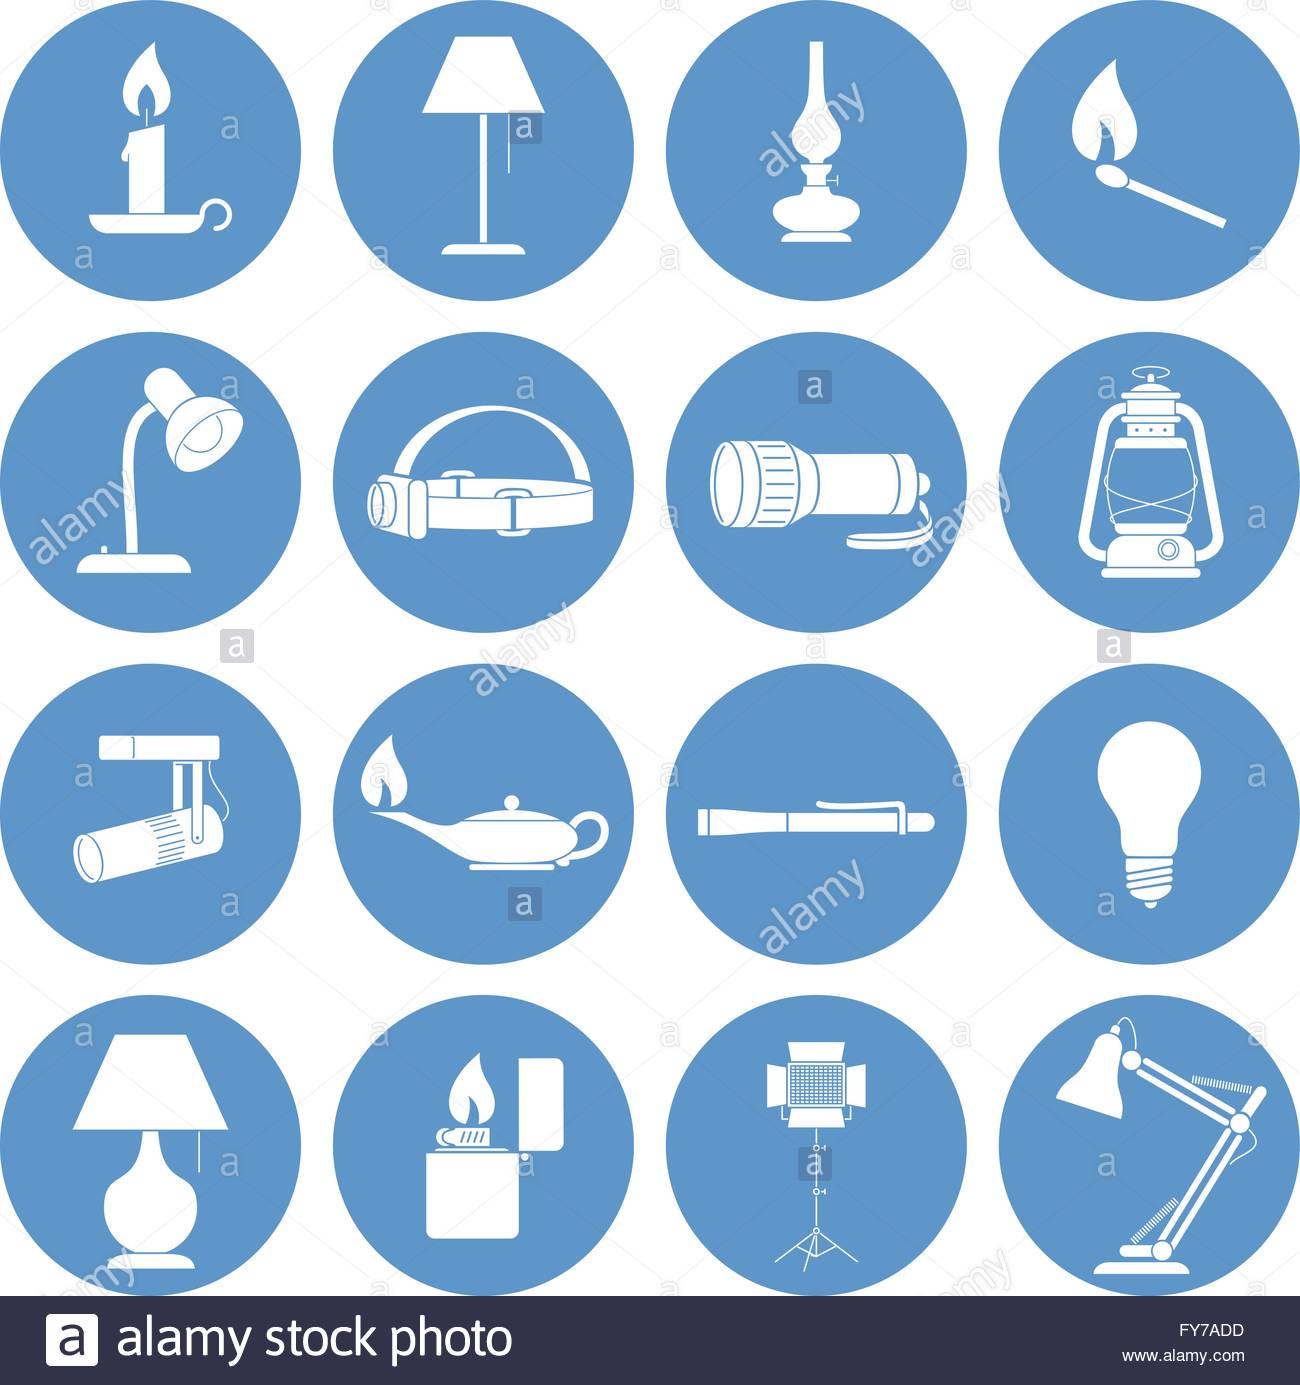 Lamp Icons Set. Vector illustration of a Set of Lamp Icons. - Stock Image